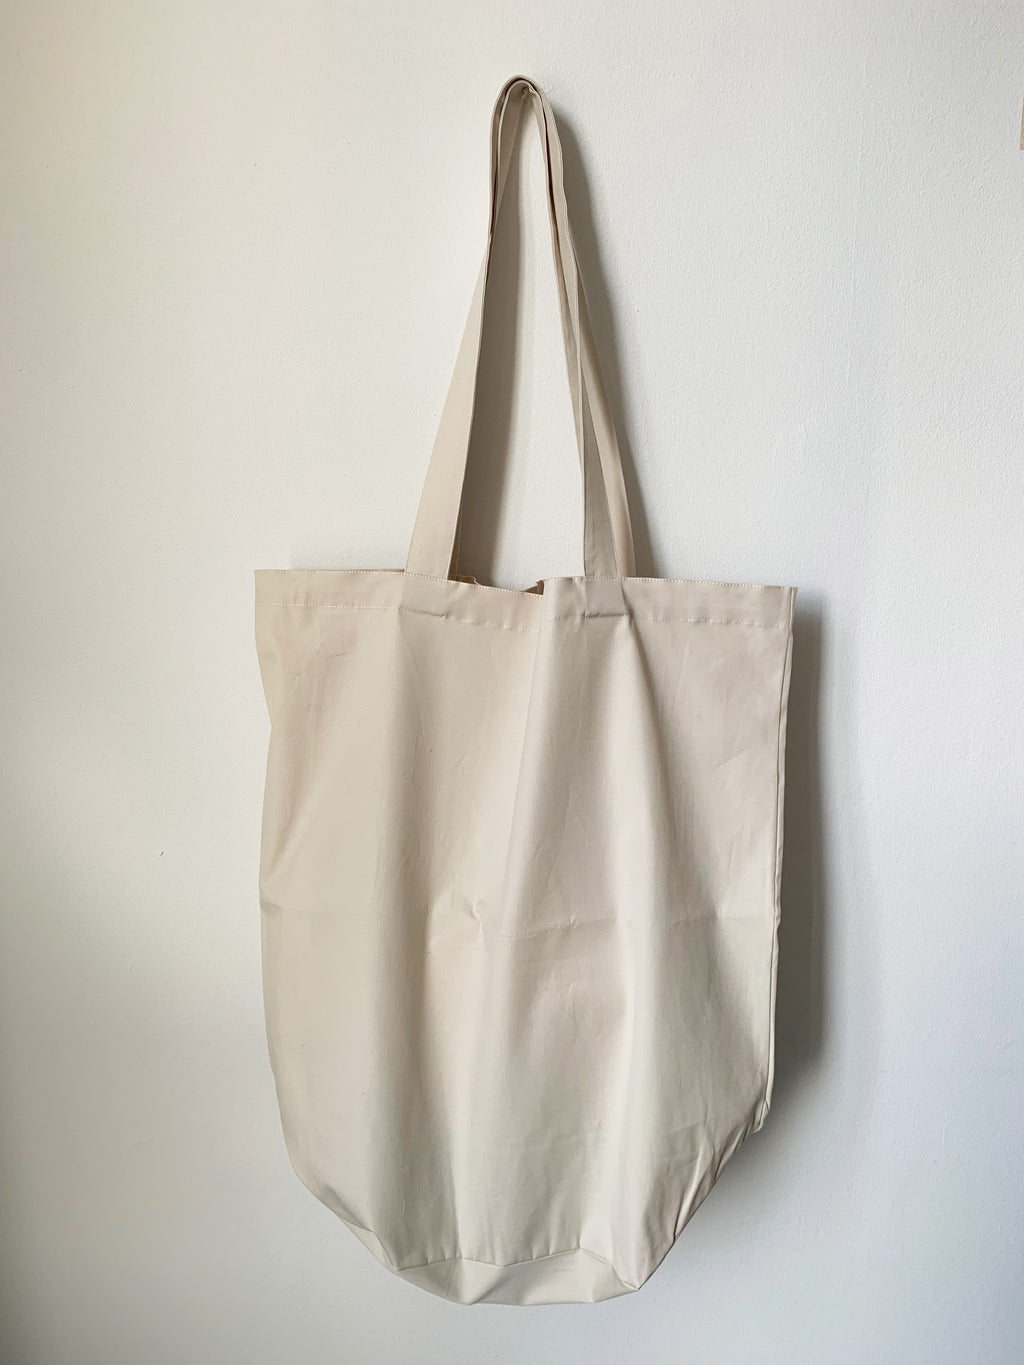 Recycle Dead Stock // Bag // Kit White